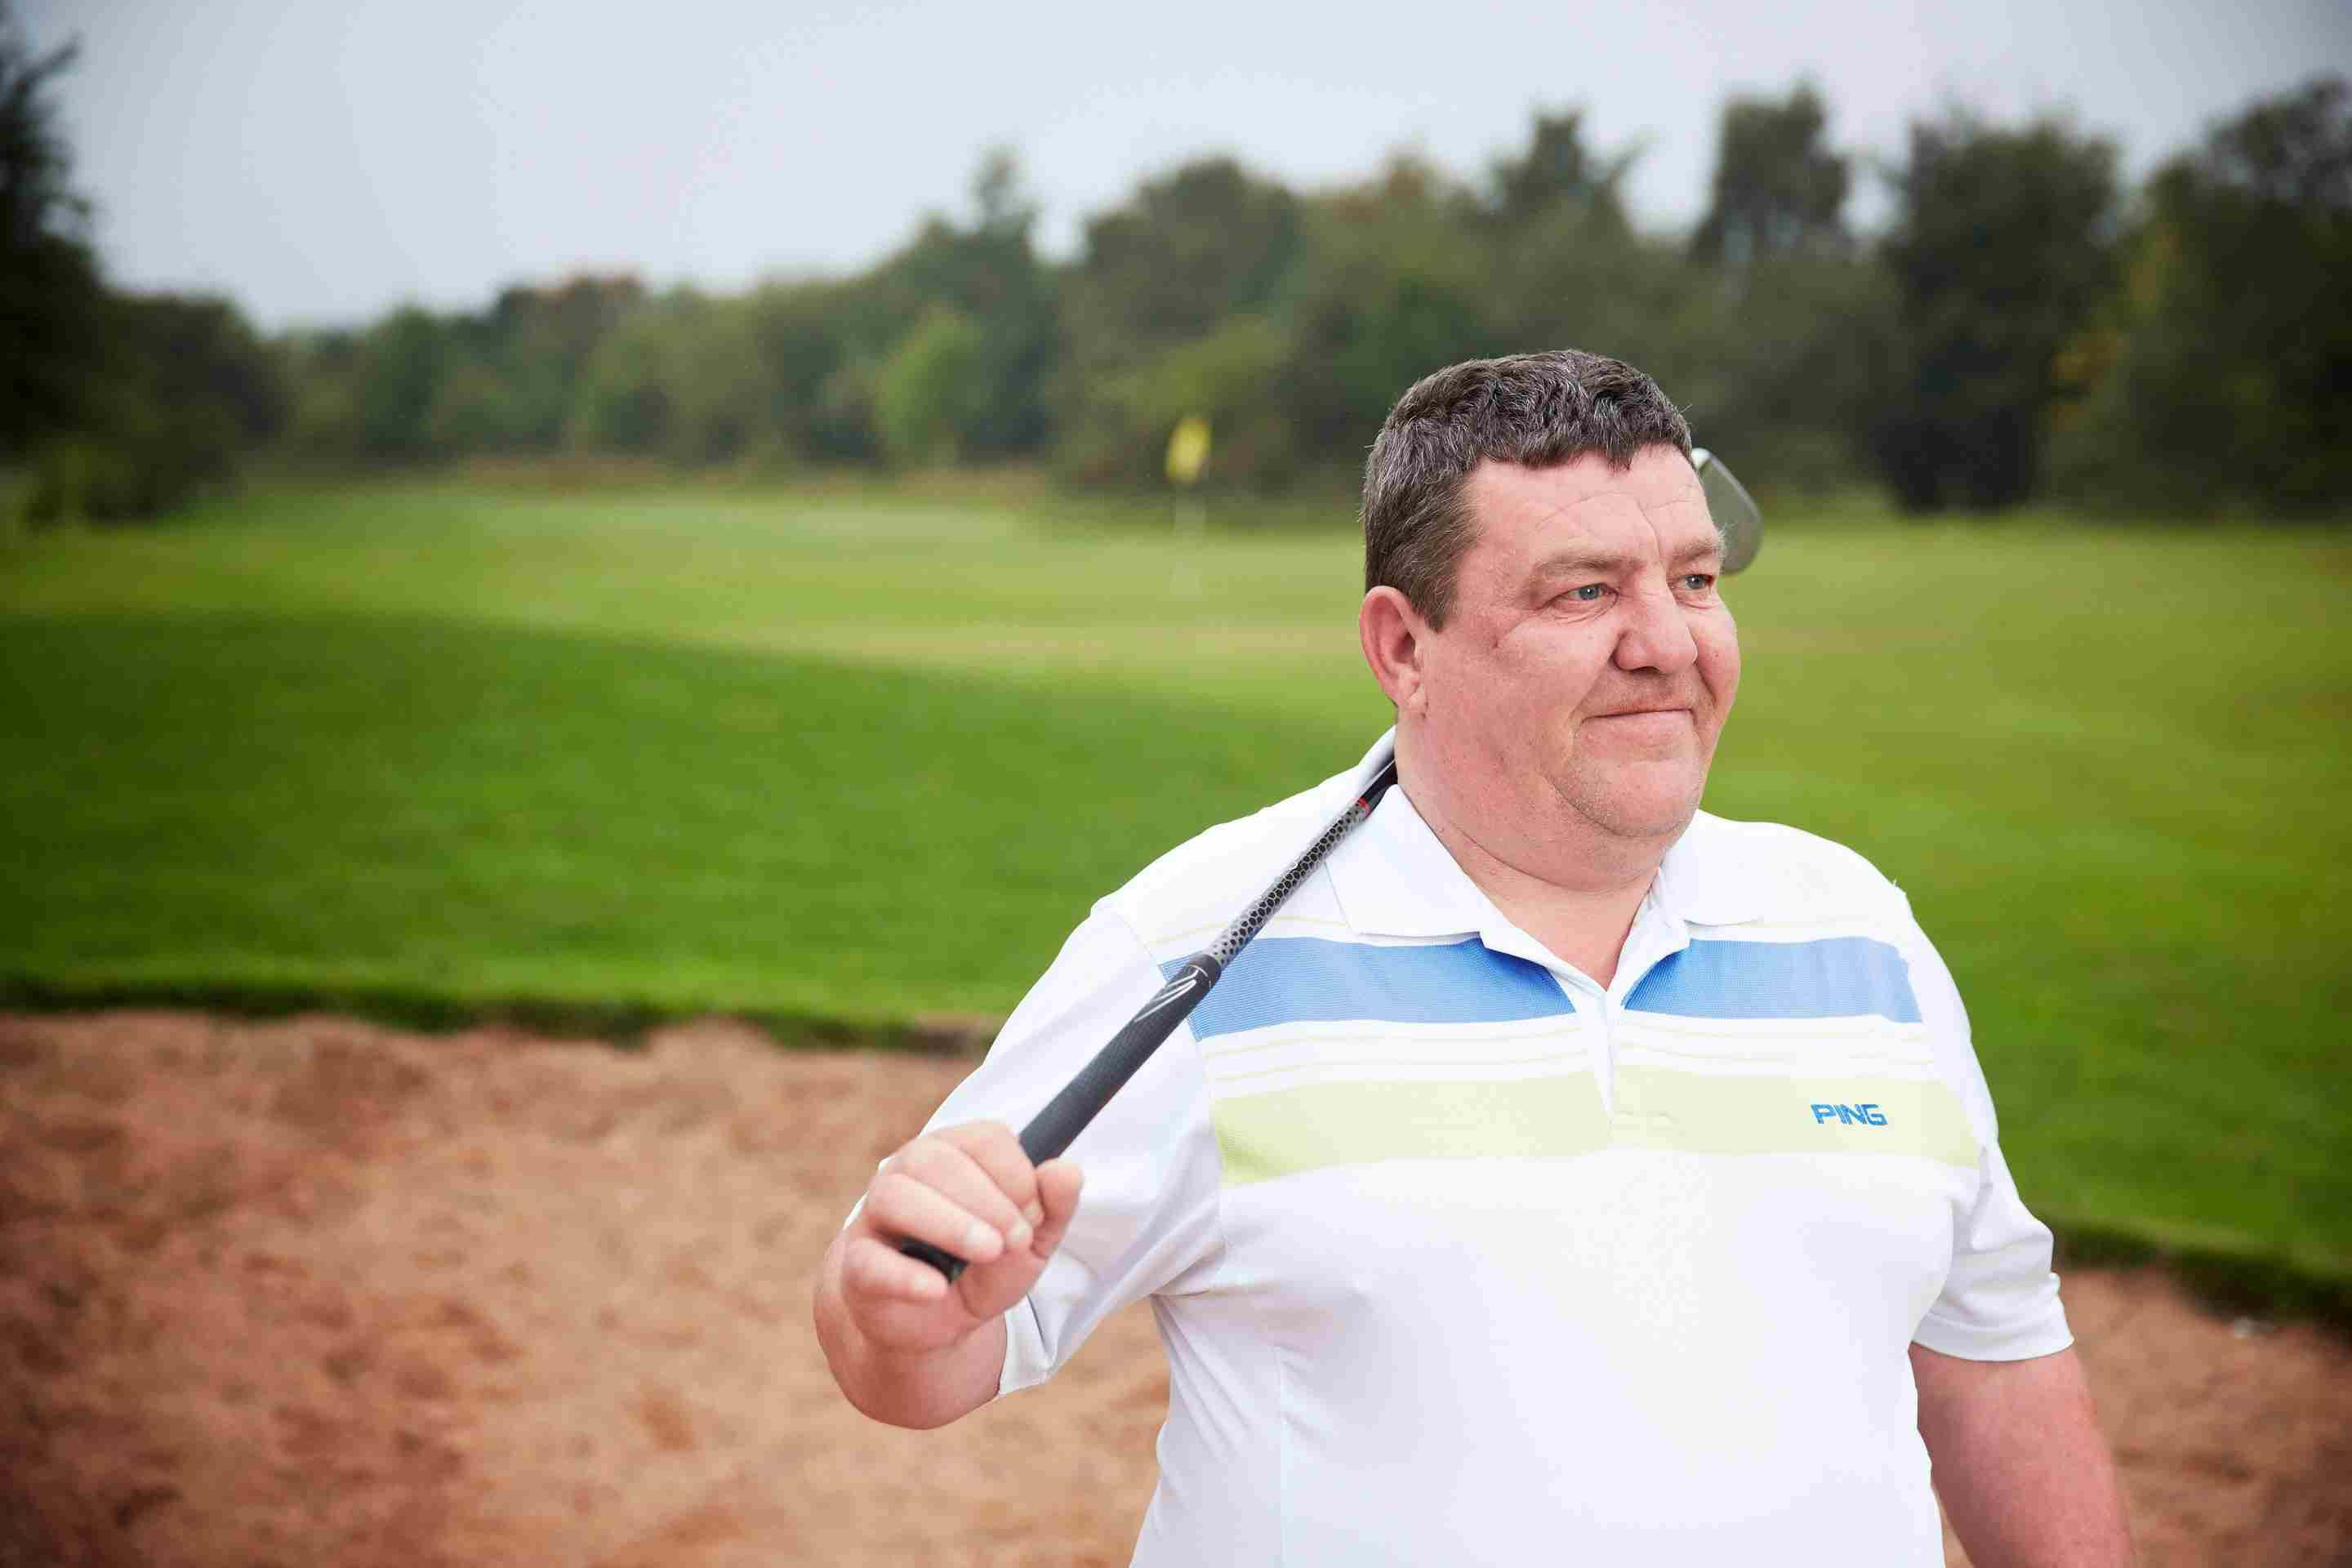 Serious injury client, Ian, is on a golf course with a golf club over his shoulder.